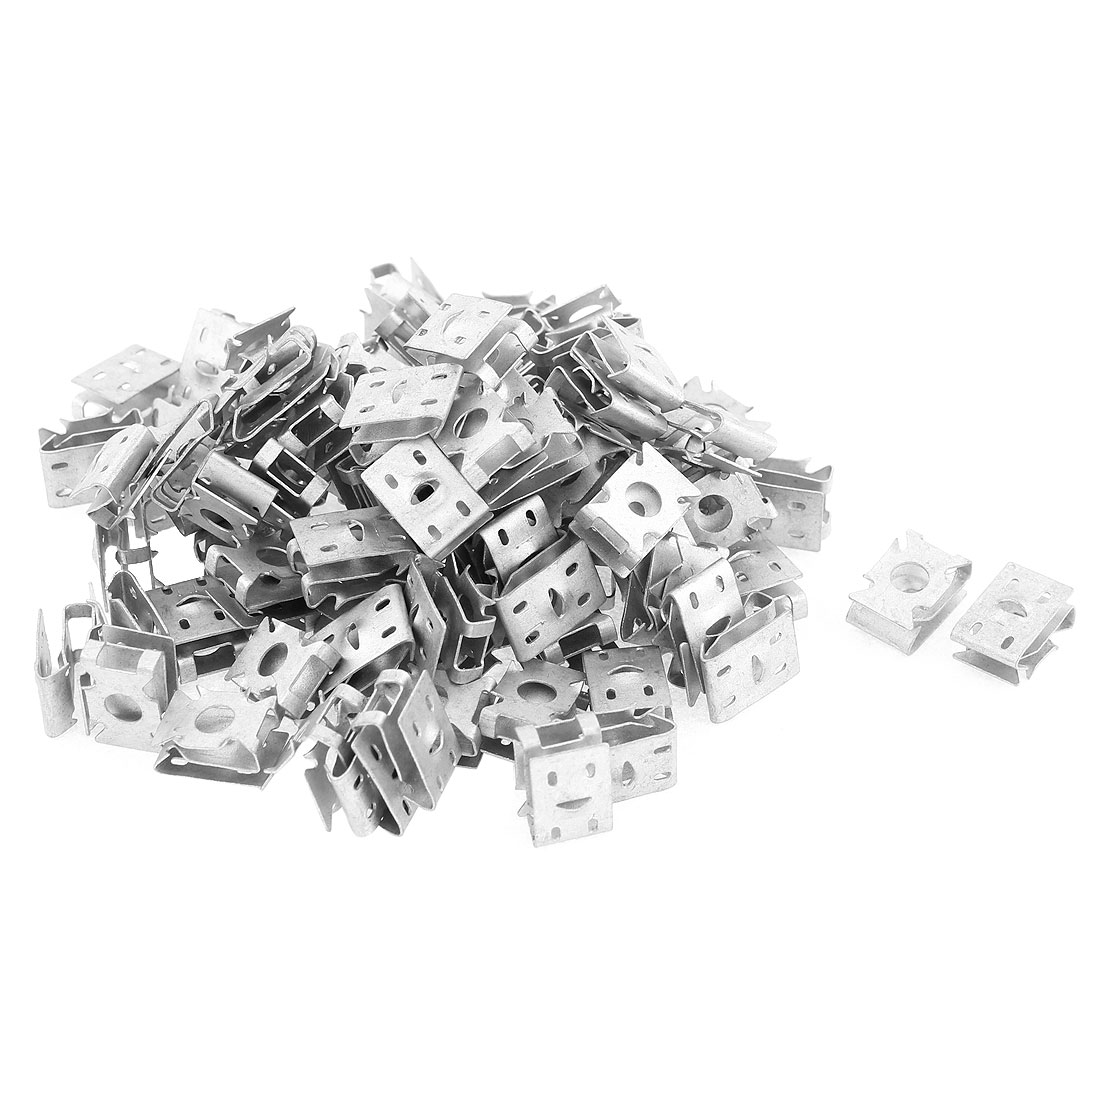 100Pcs Silver Tone Car Dash License Plate Metal Retainer Clips